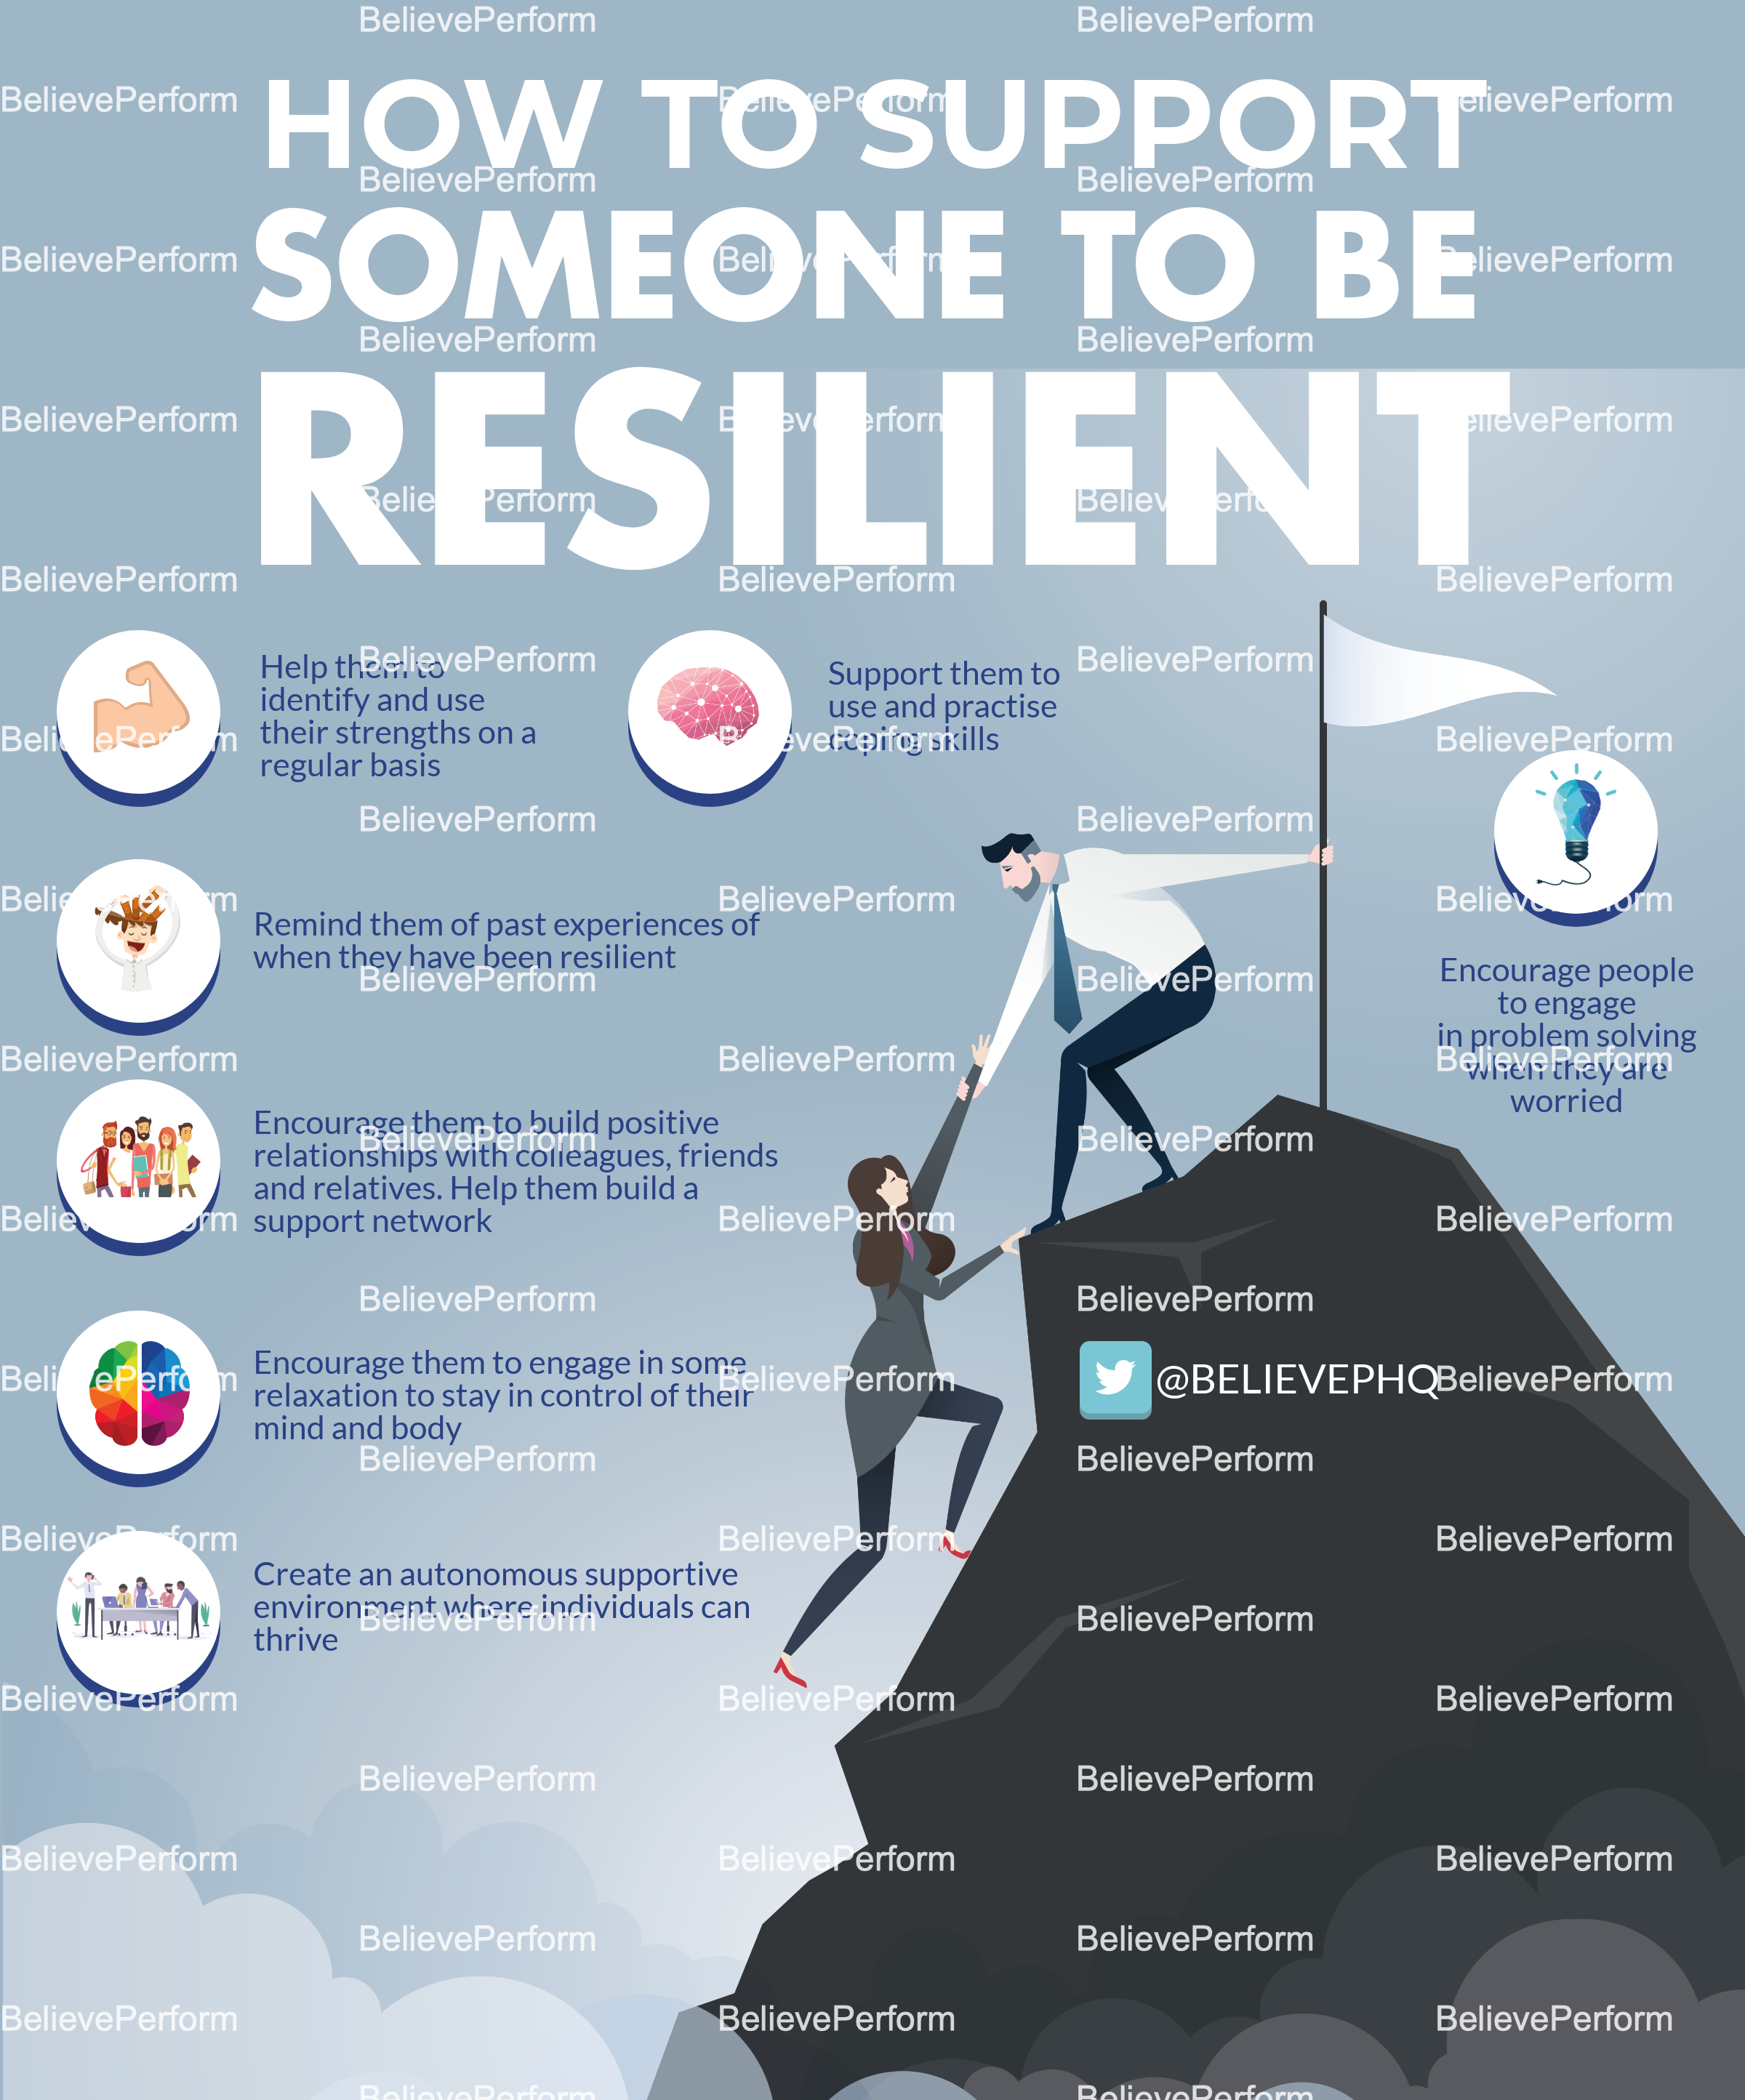 How to support someone to be resilient